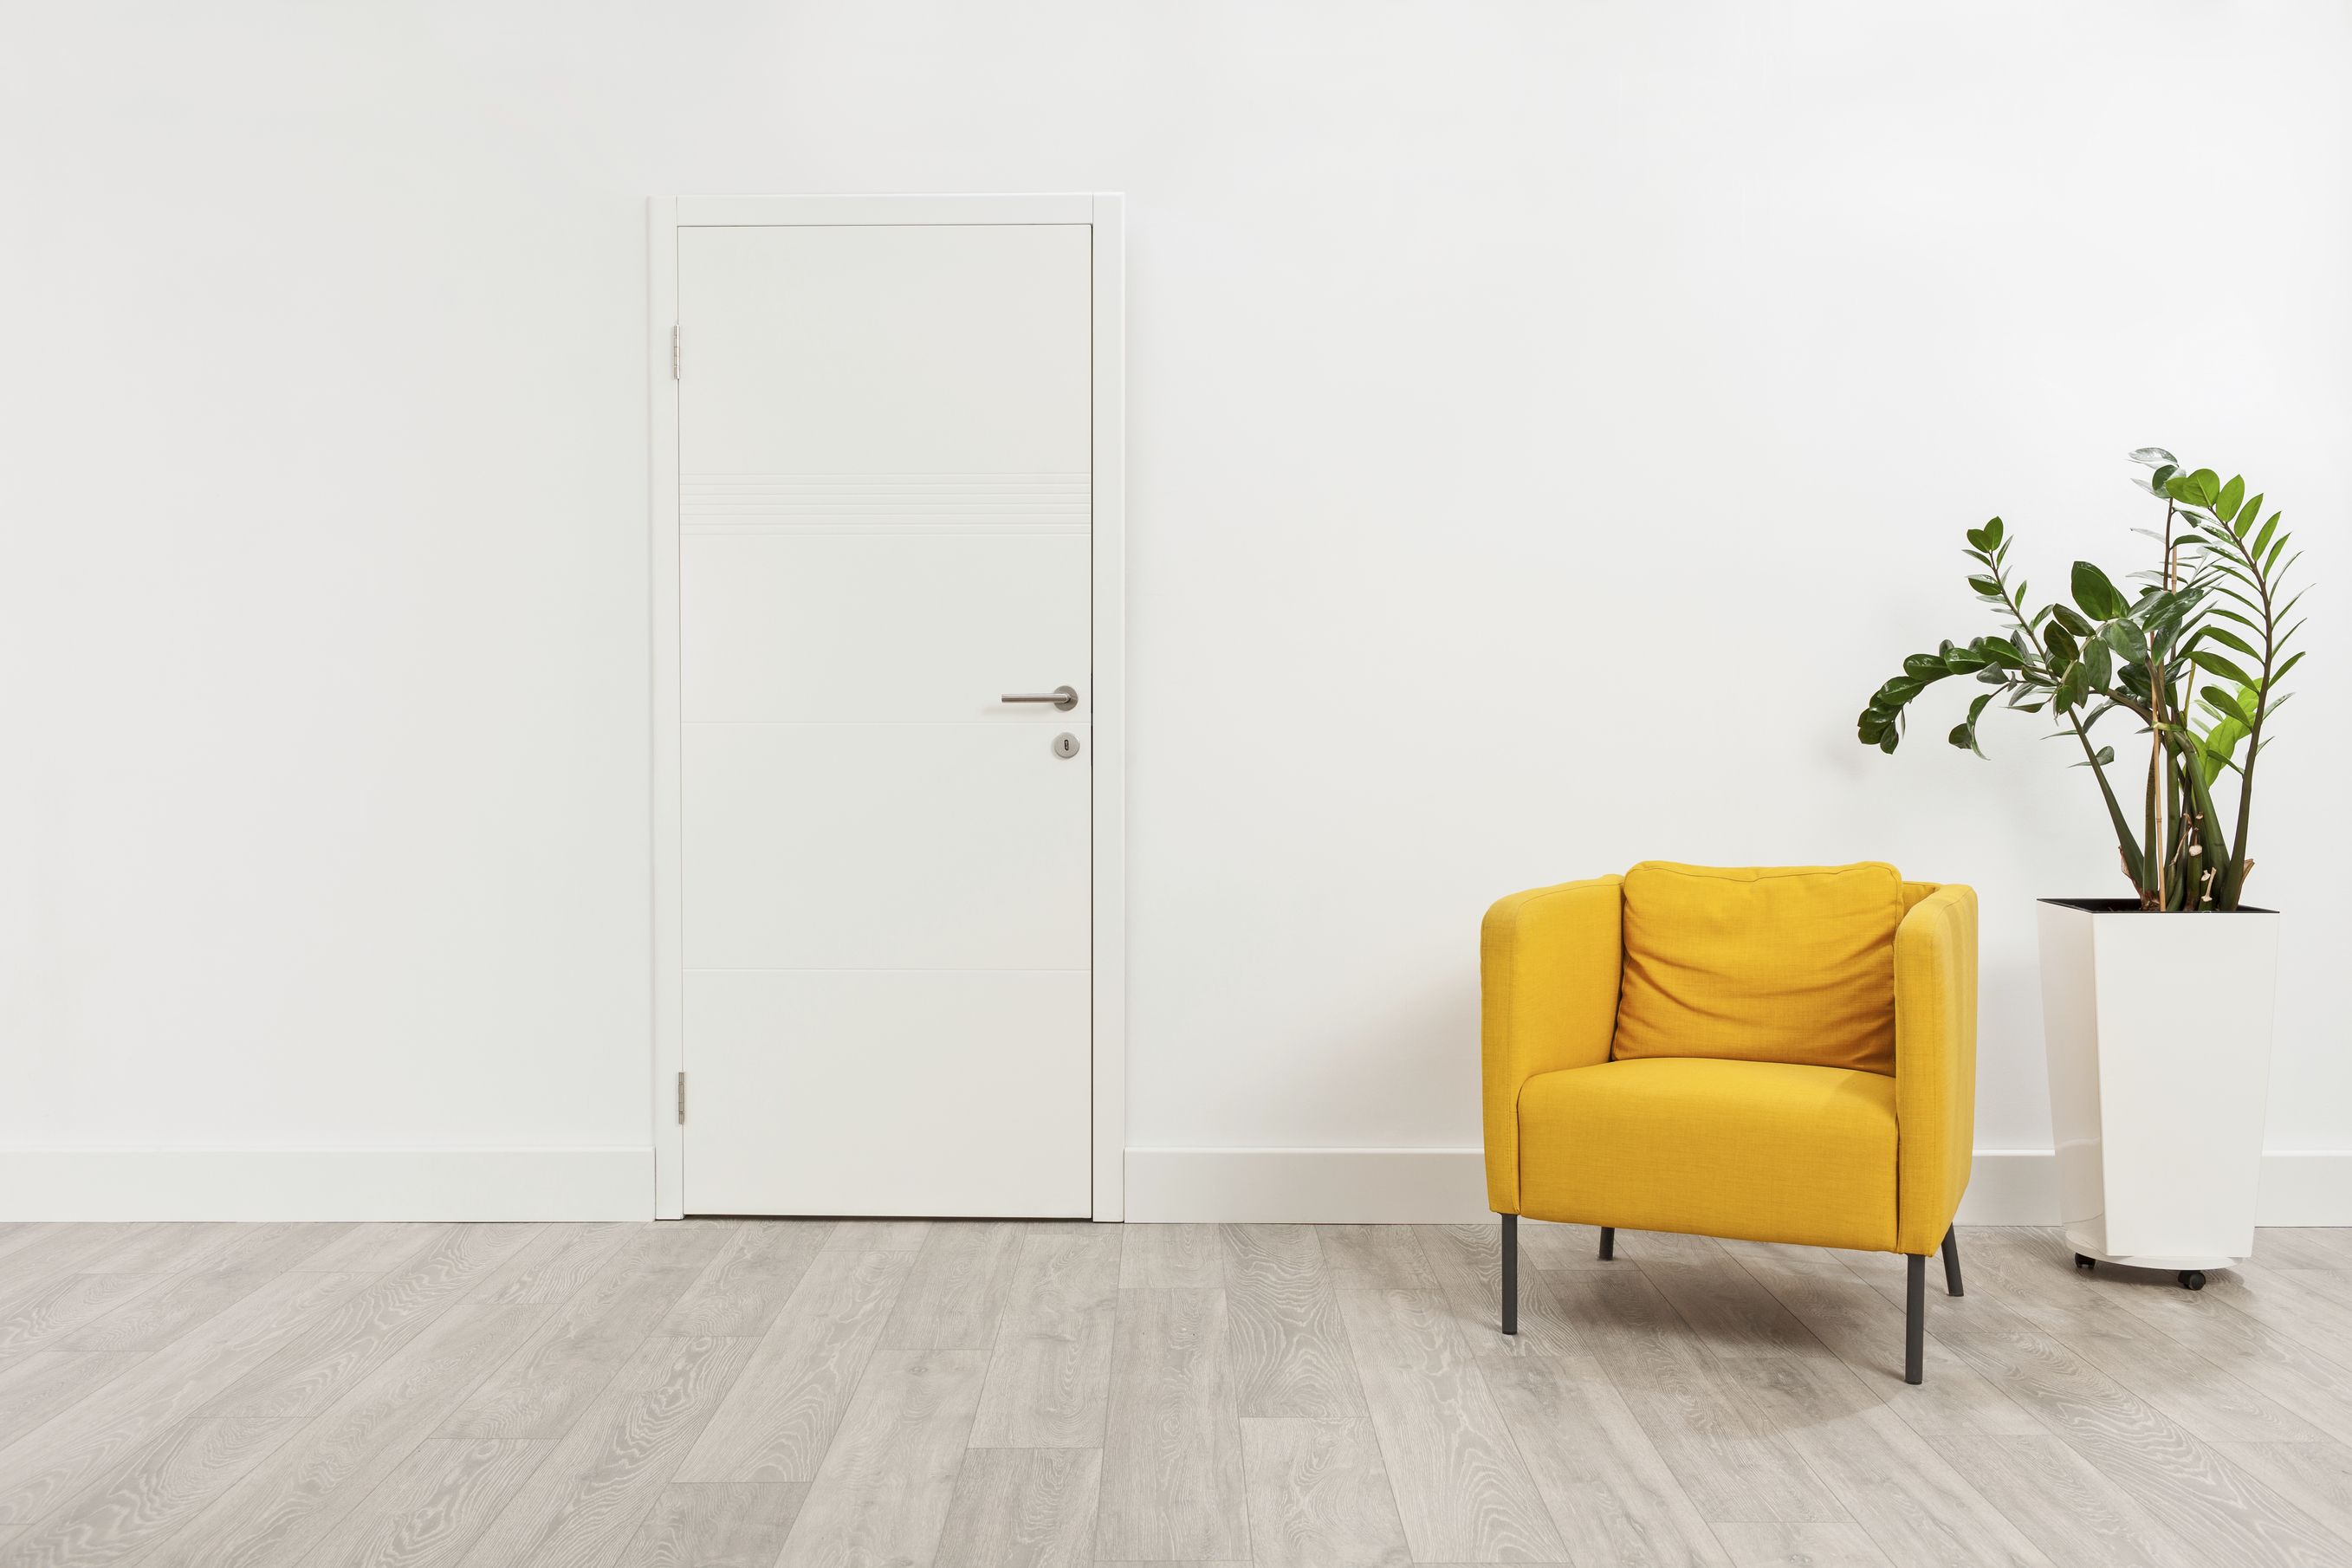 Vinyl Flooring with Yellow Chair